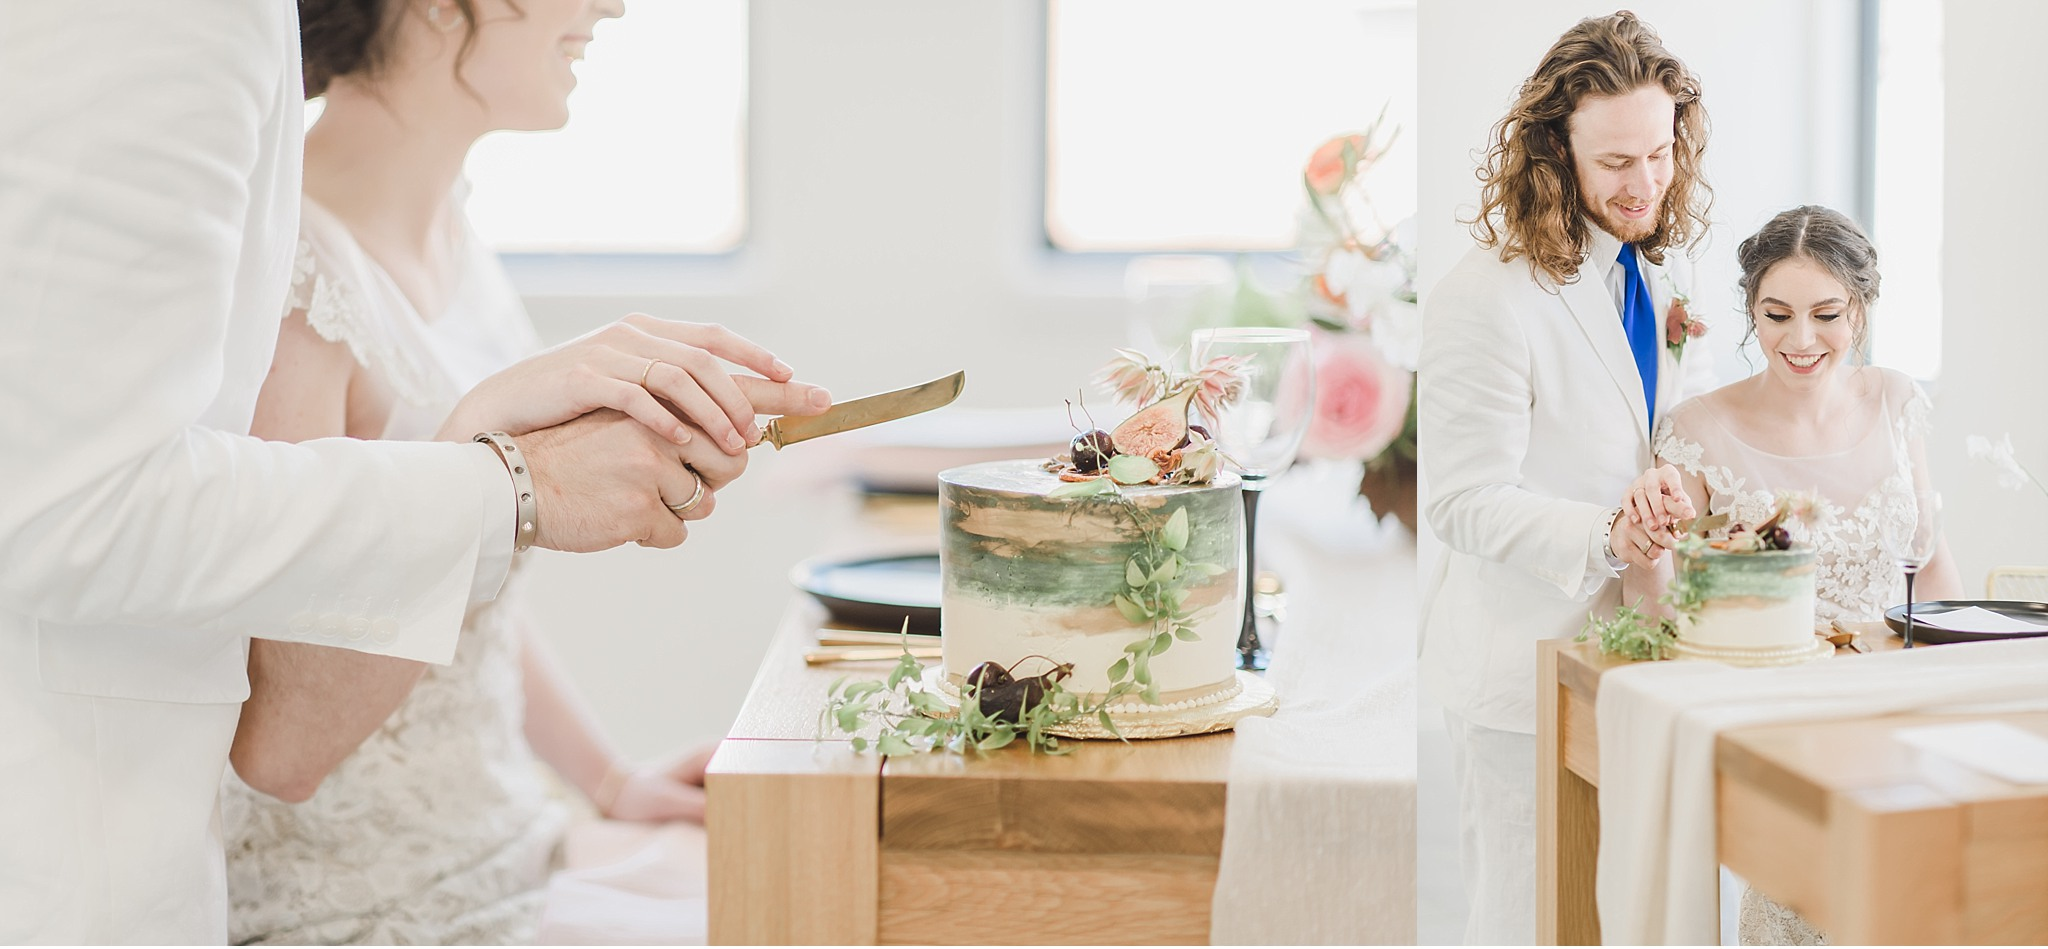 Bride and Groom cake cutting Light and Airy Styled Greek Wedding Supply Manheim PA Wedding photography photo_1909.jpg